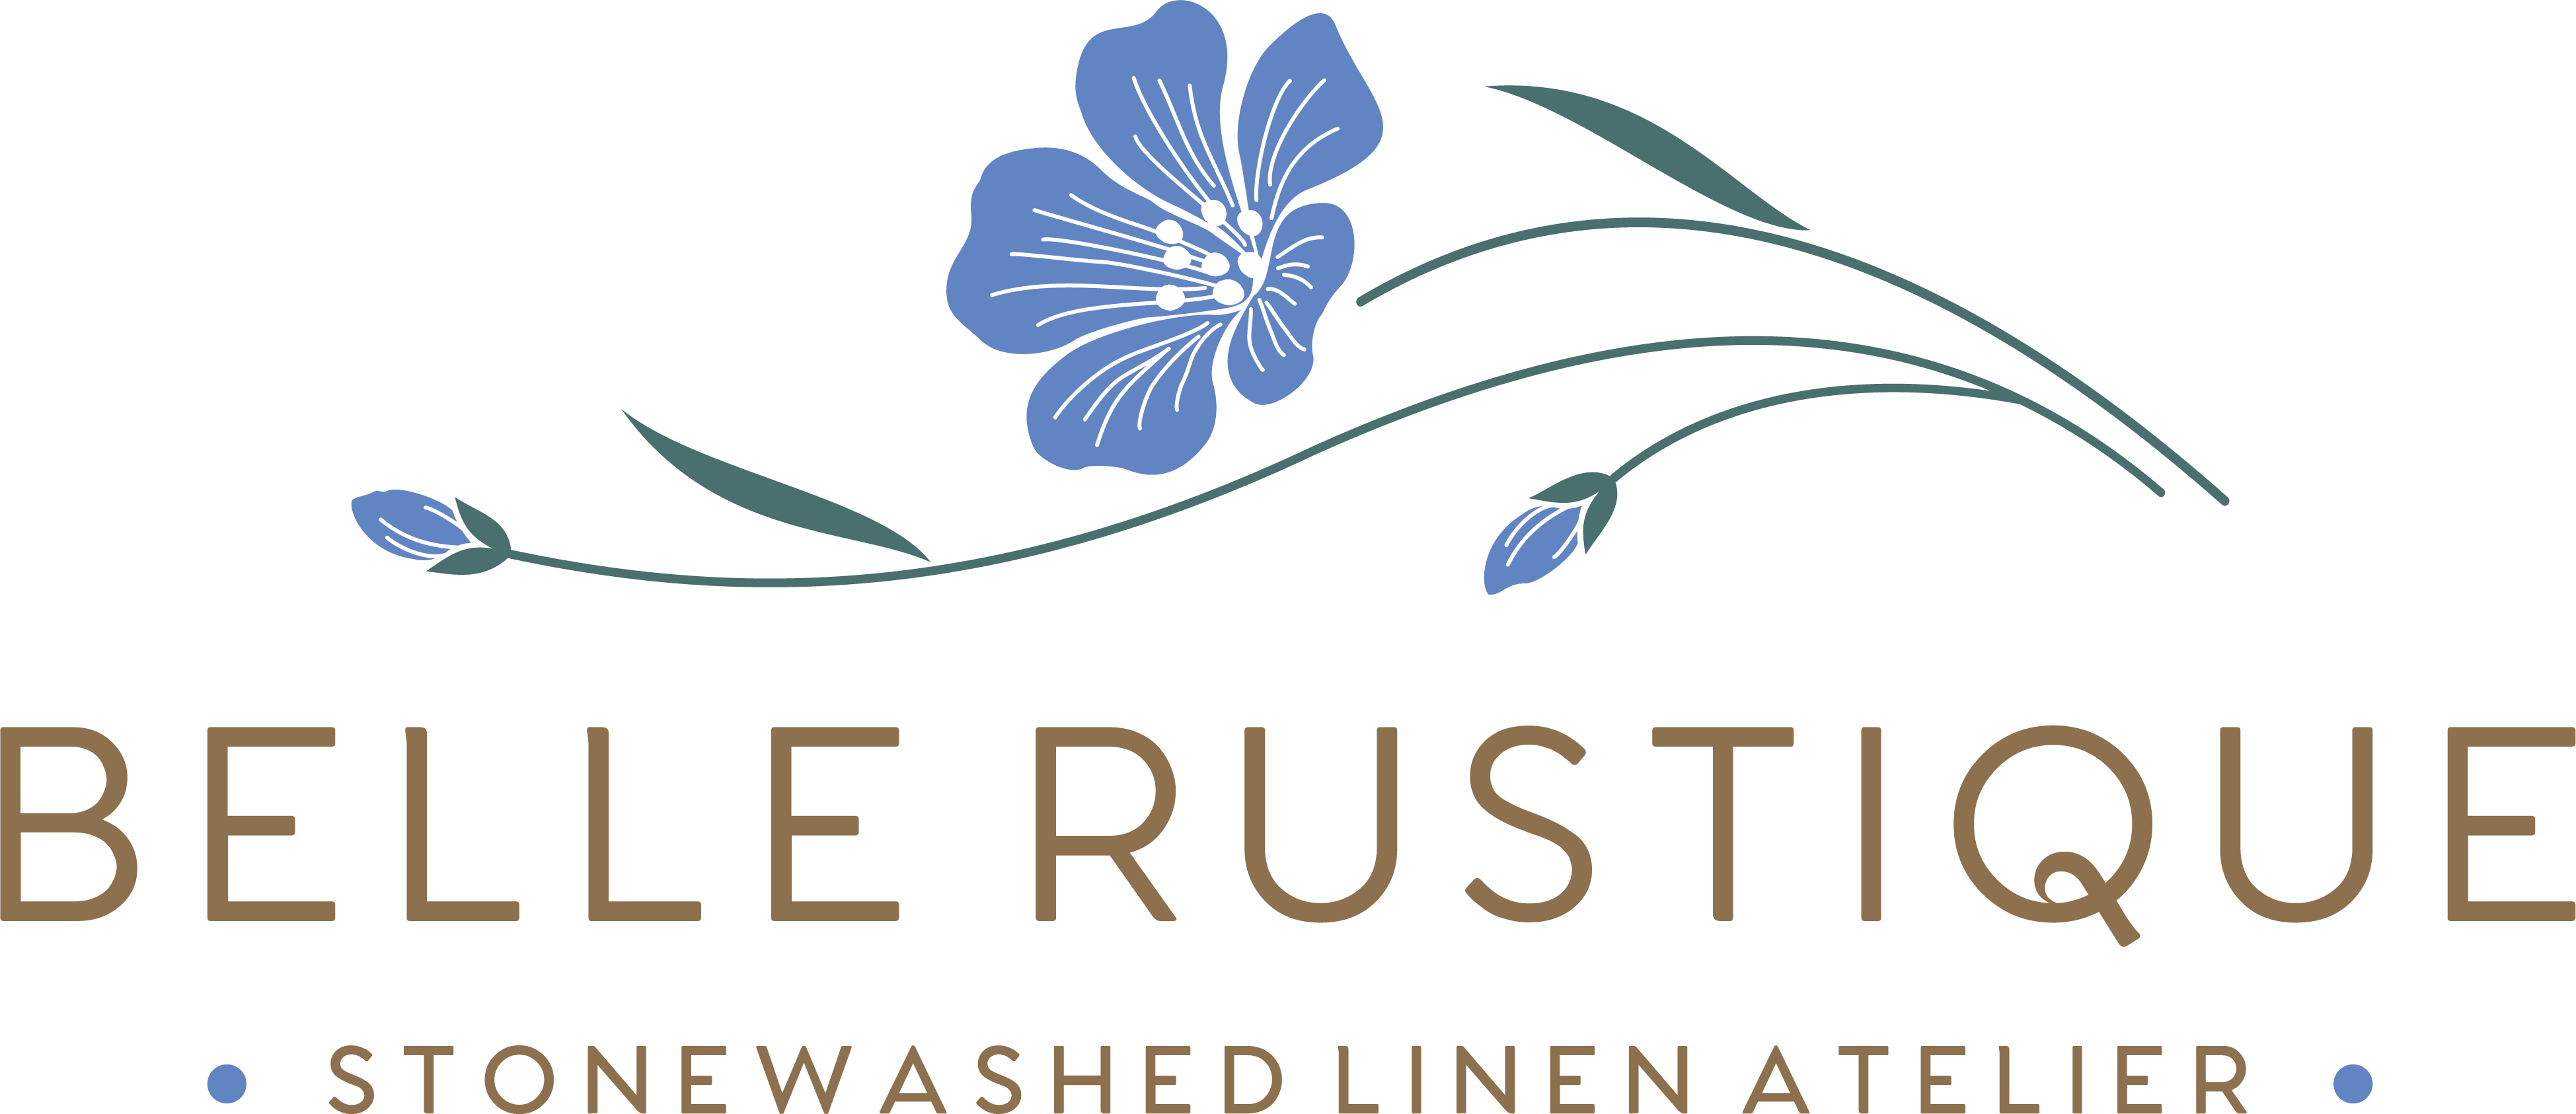 Belle Rustique needs a beautiful and authentic logo, with just a hint of luxe or freshness!